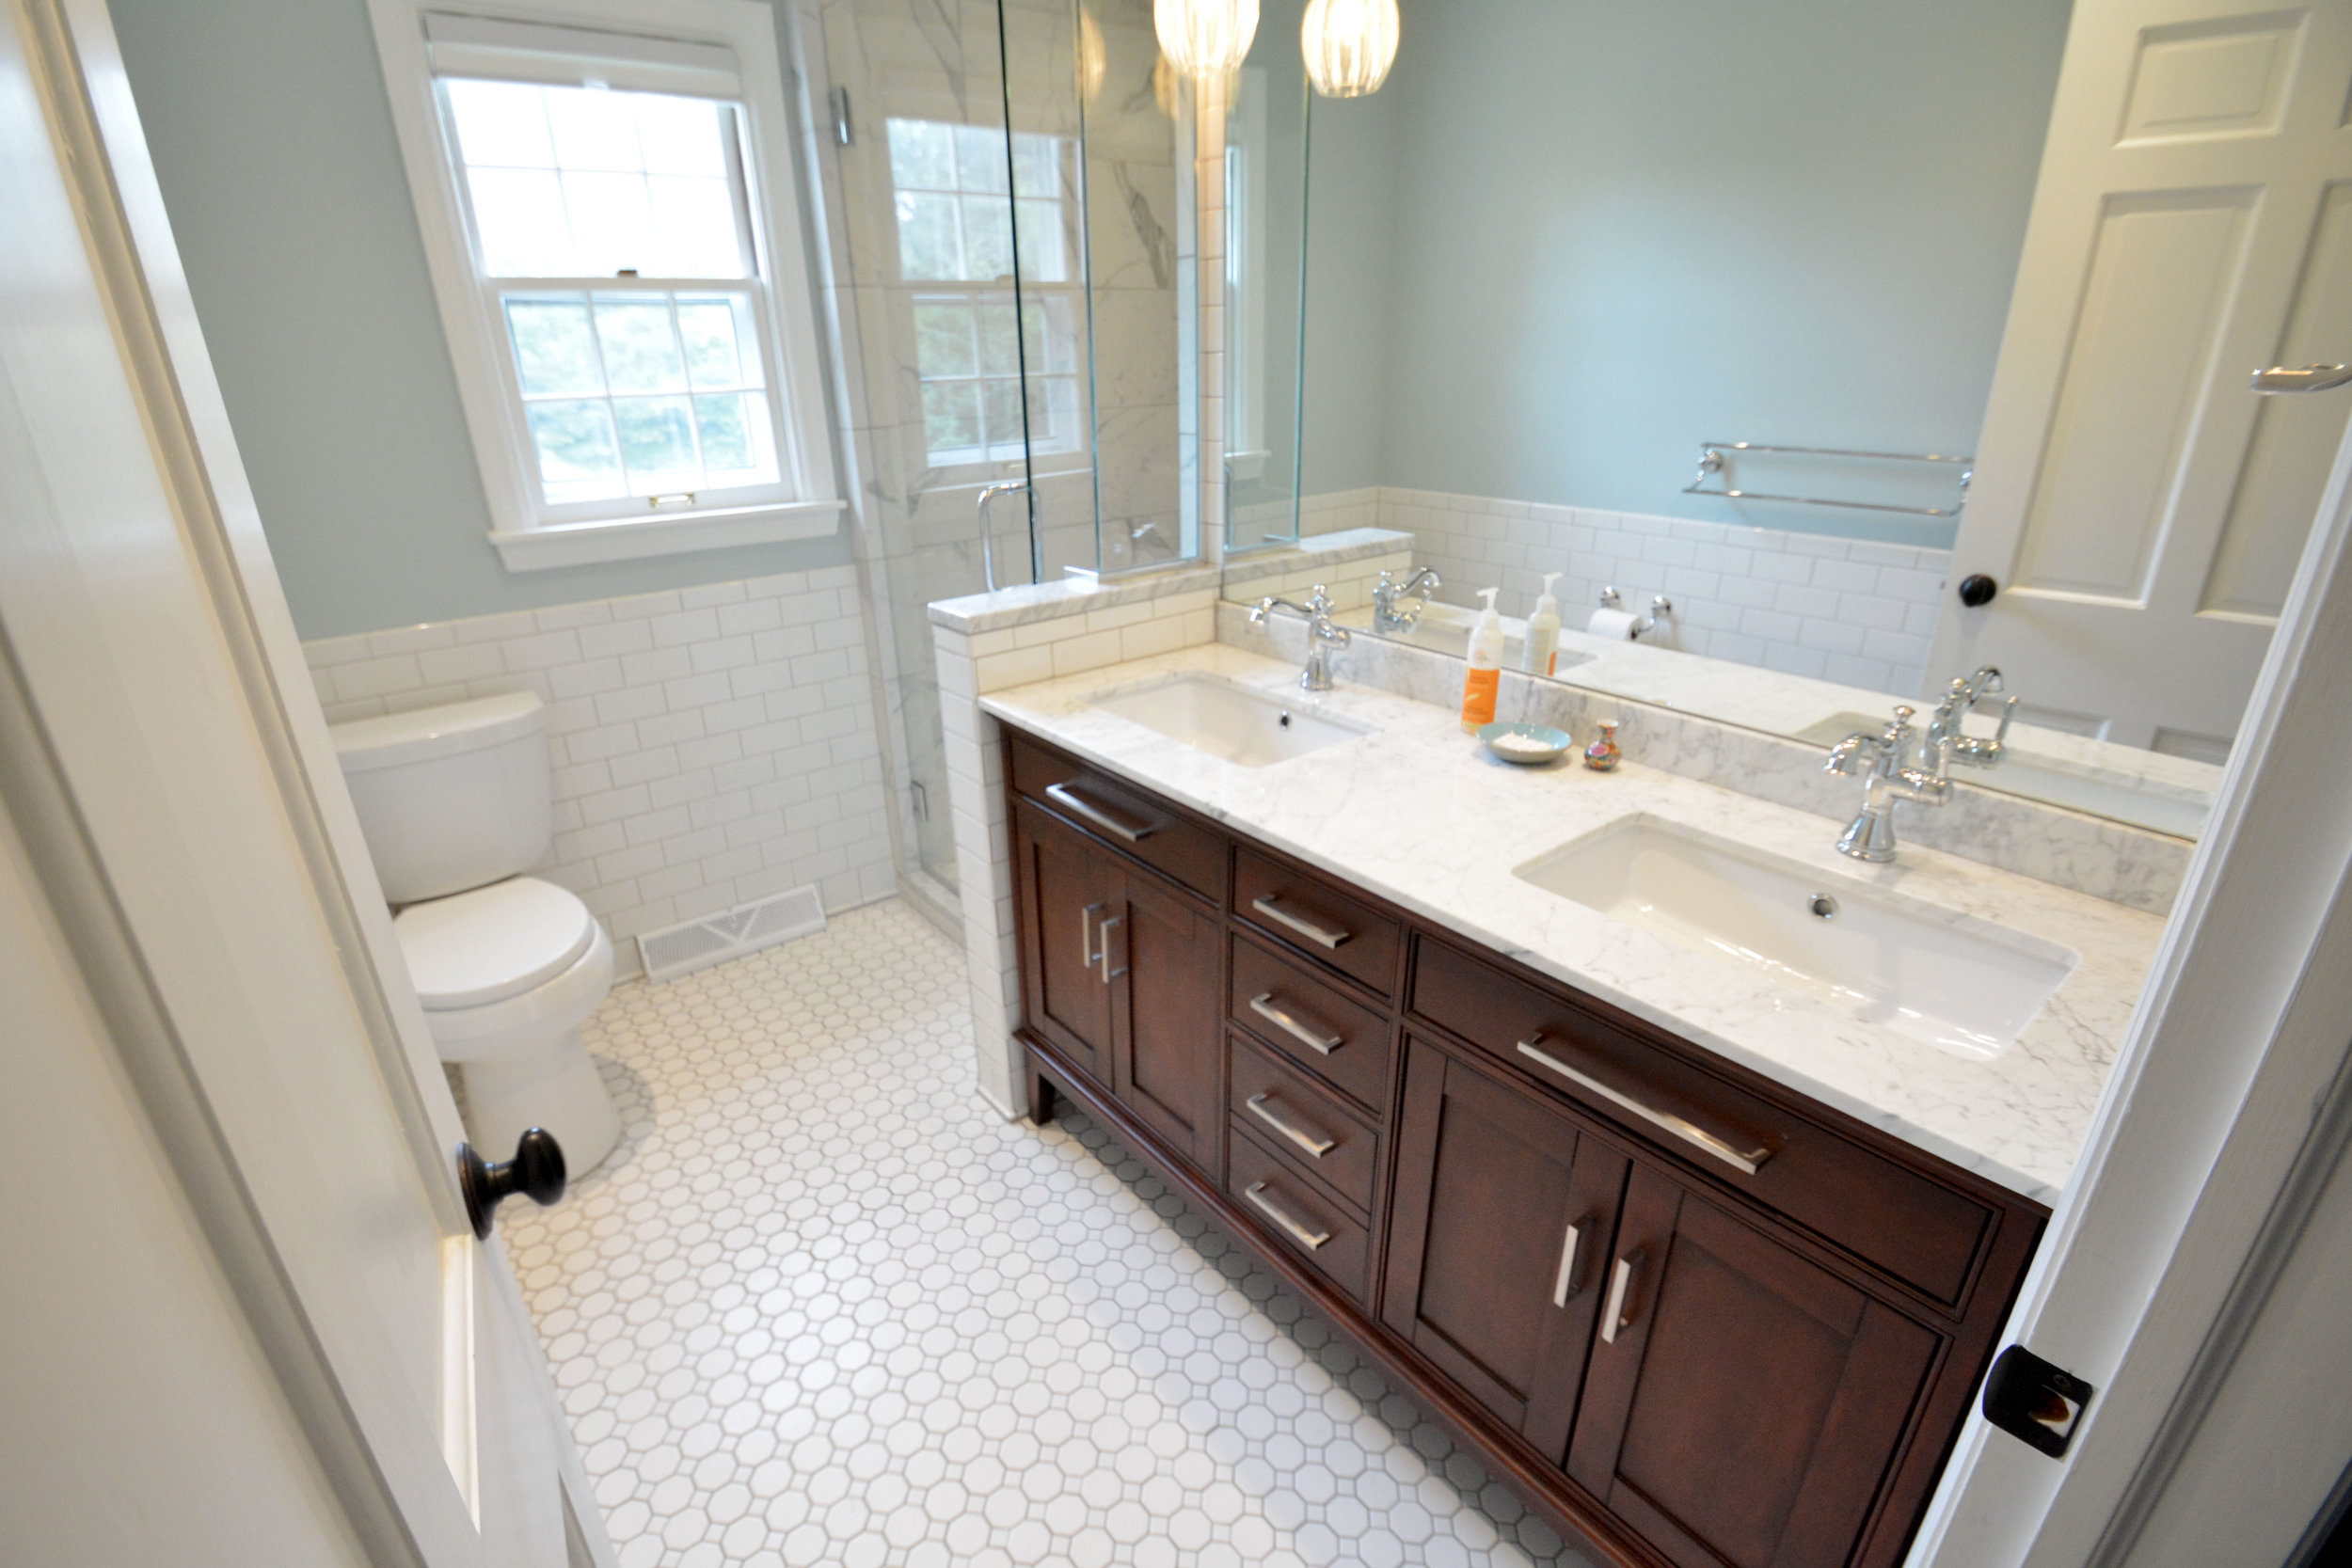 This Indianapolis home needed two new bathrooms. The old ones were dated and weren't going to help sell the home for top dollar. SYI came in and selected classic, timeless materials that matched the style of the home and didn't break the bank. You can see the project  here .